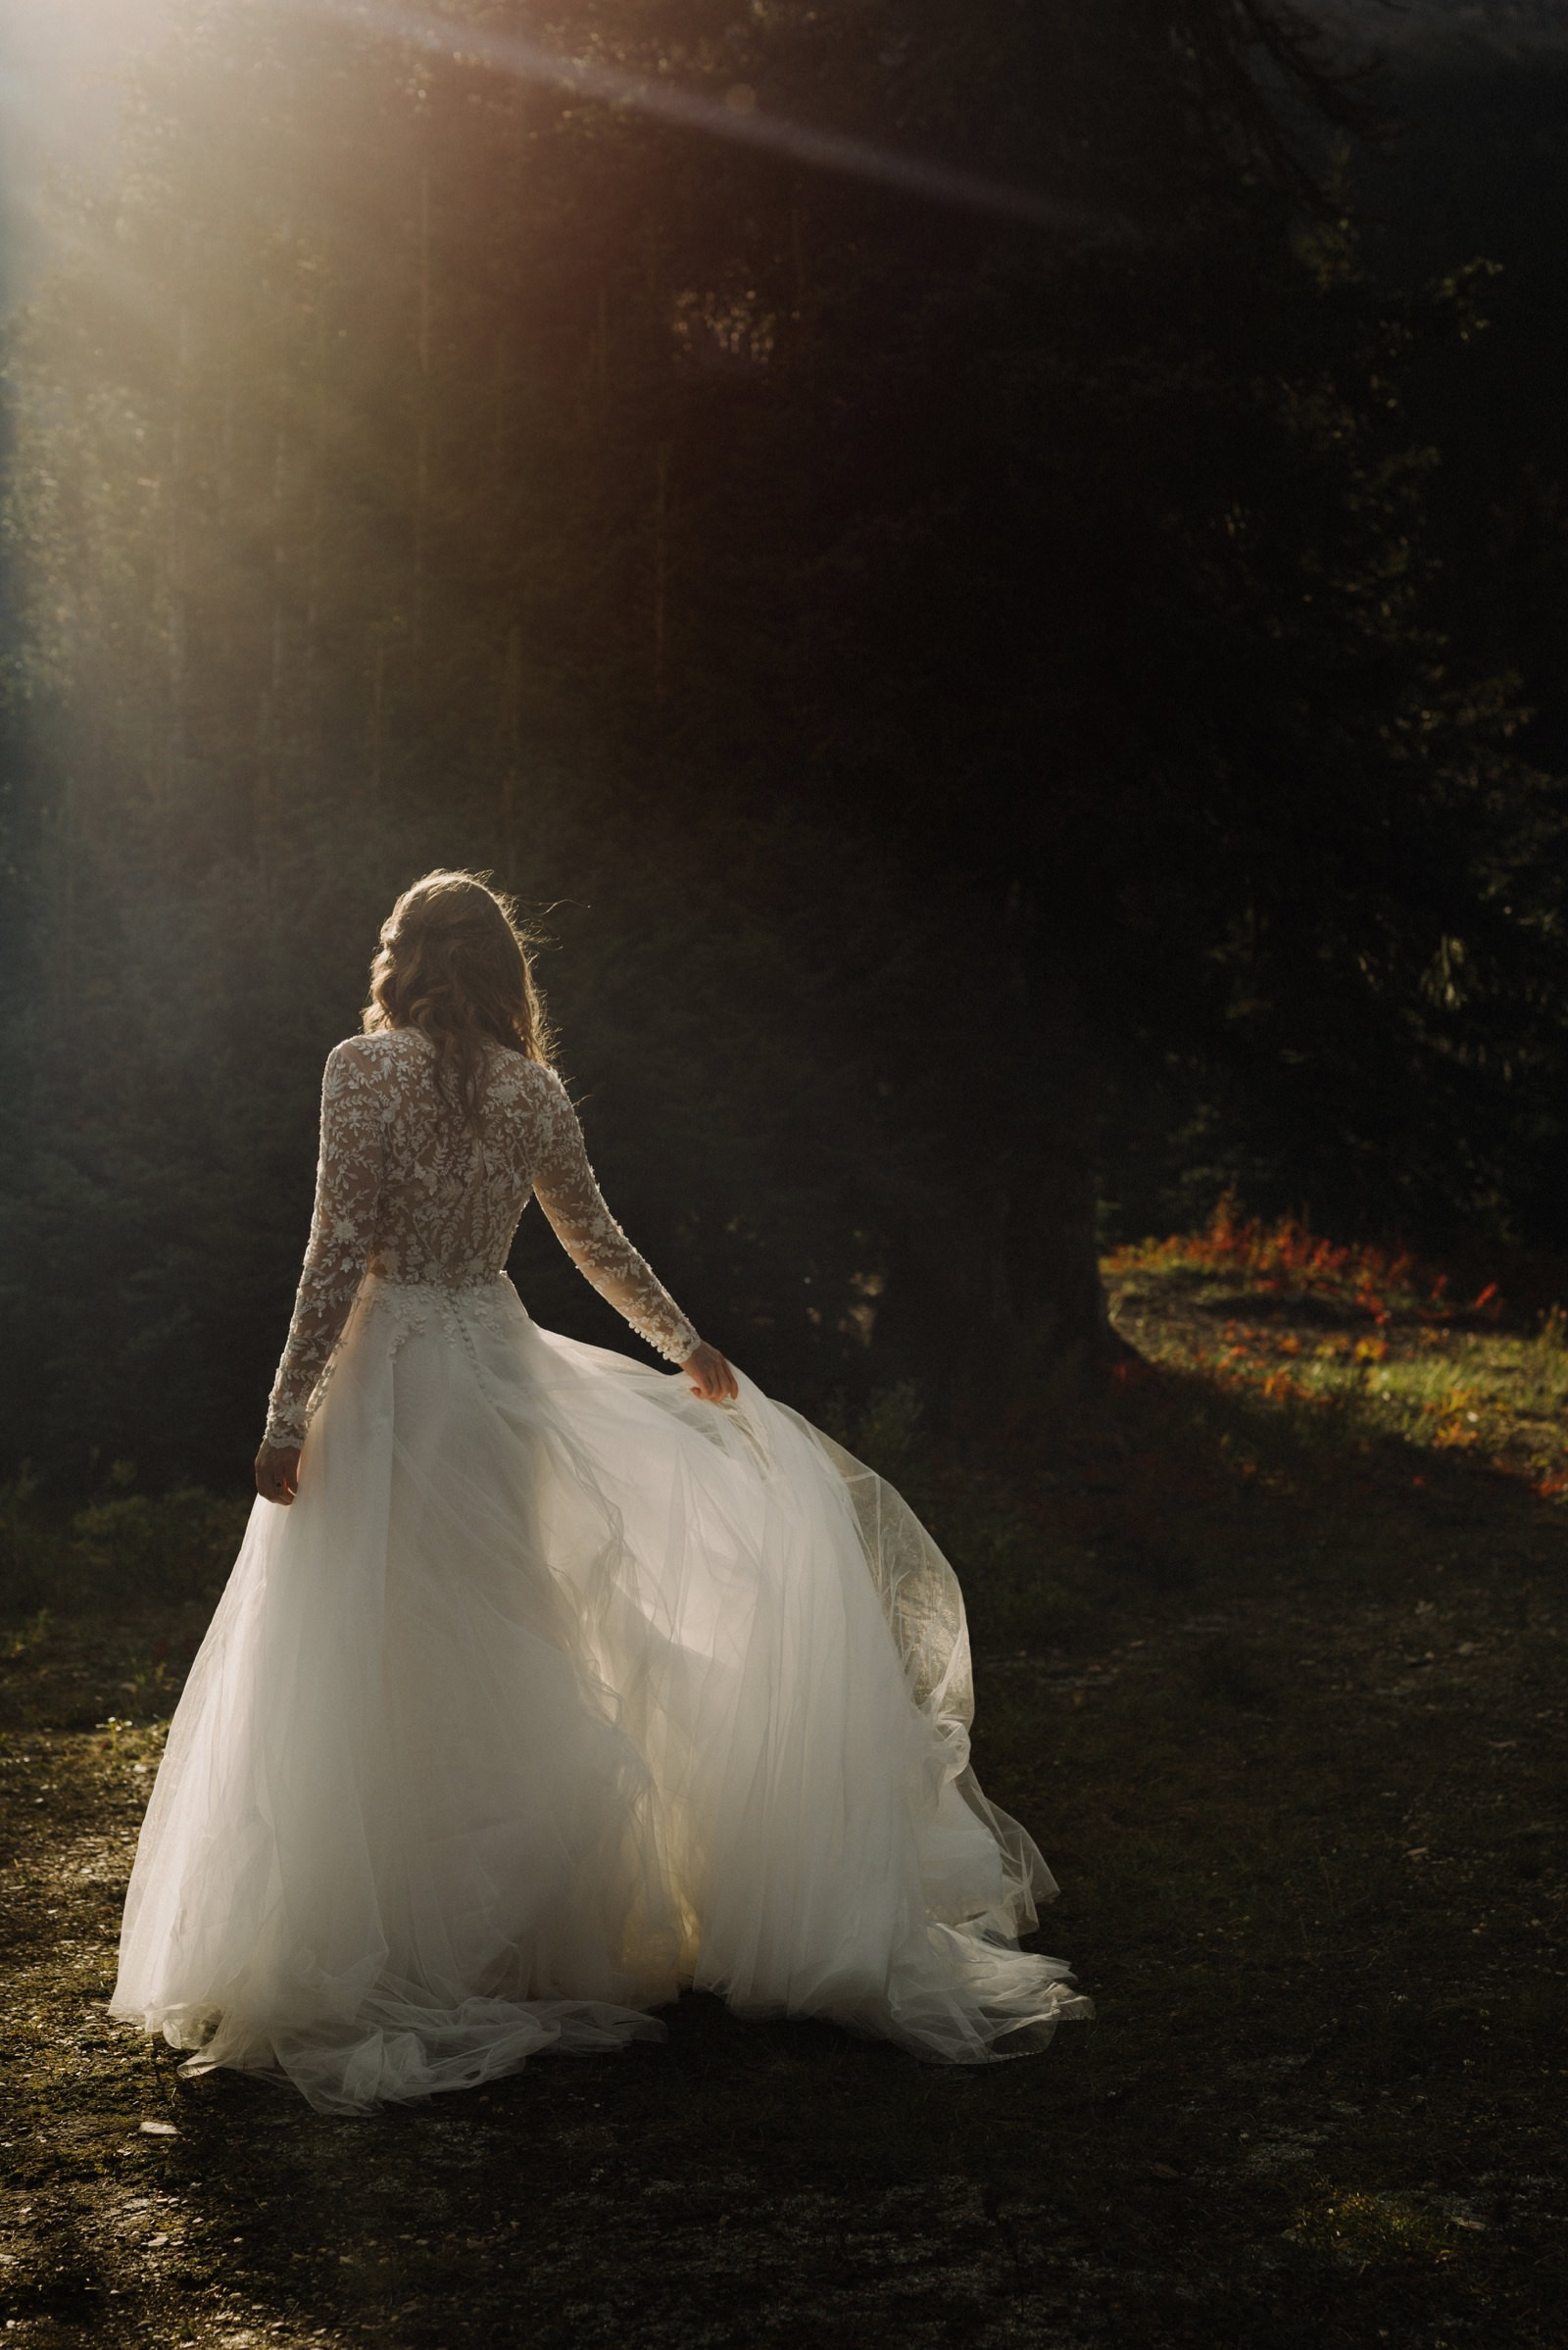 Sunset bridals in a sunlit forest in Banff National Park